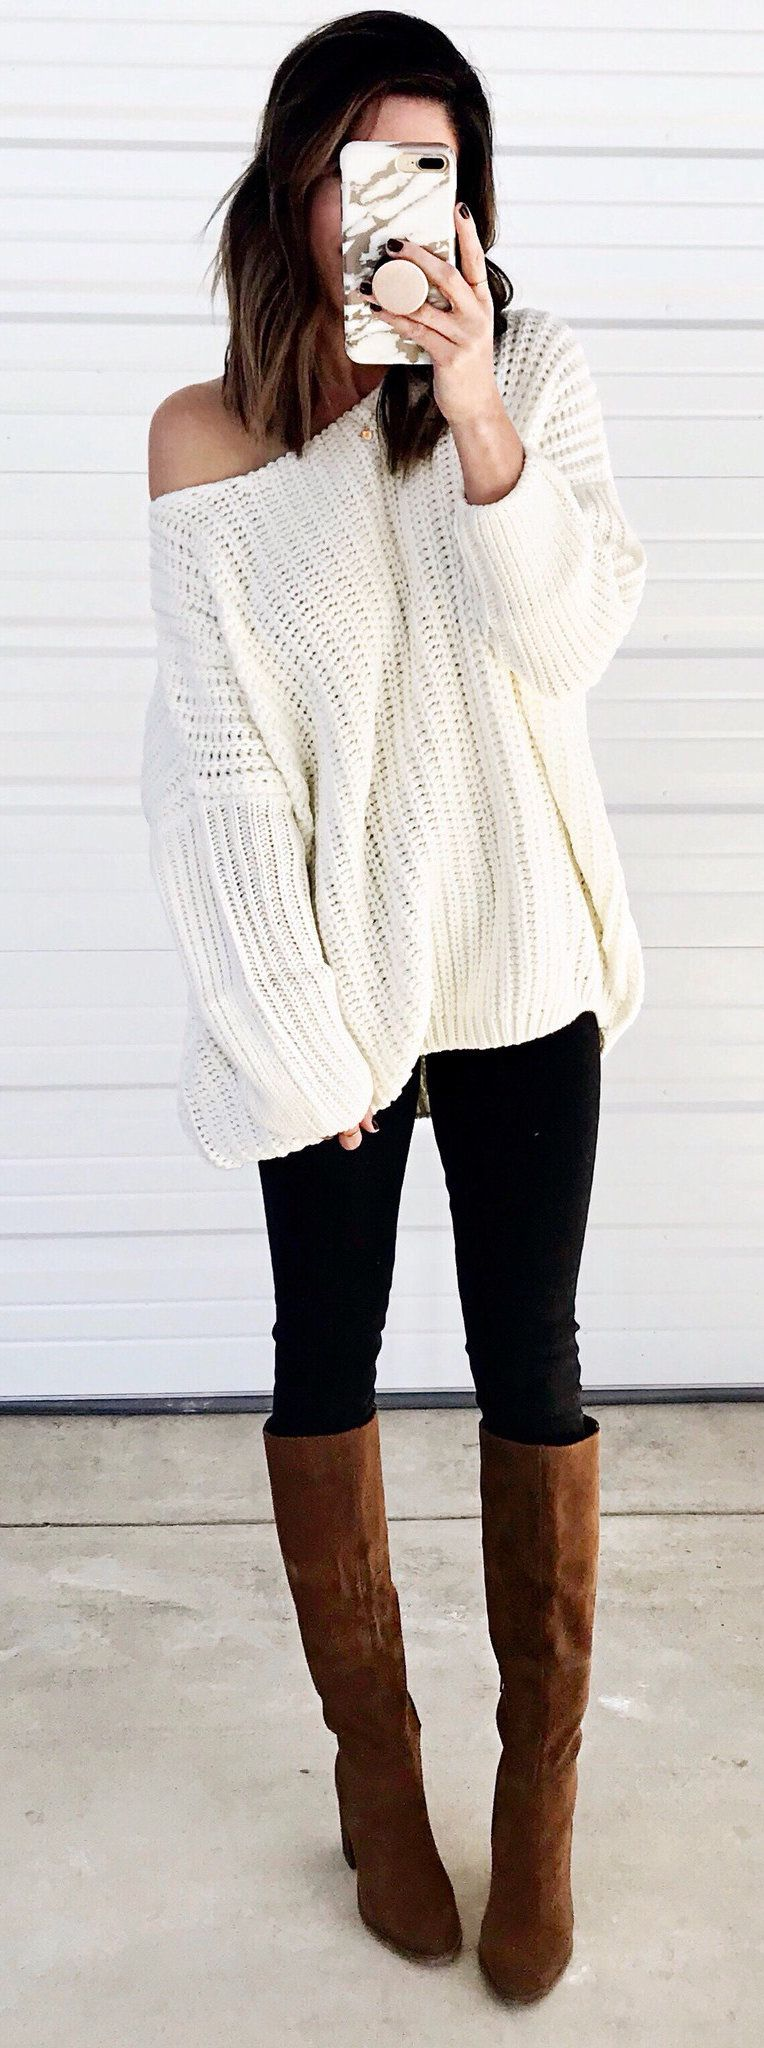 beige sweater, black leggings, and pair of brown suede boots